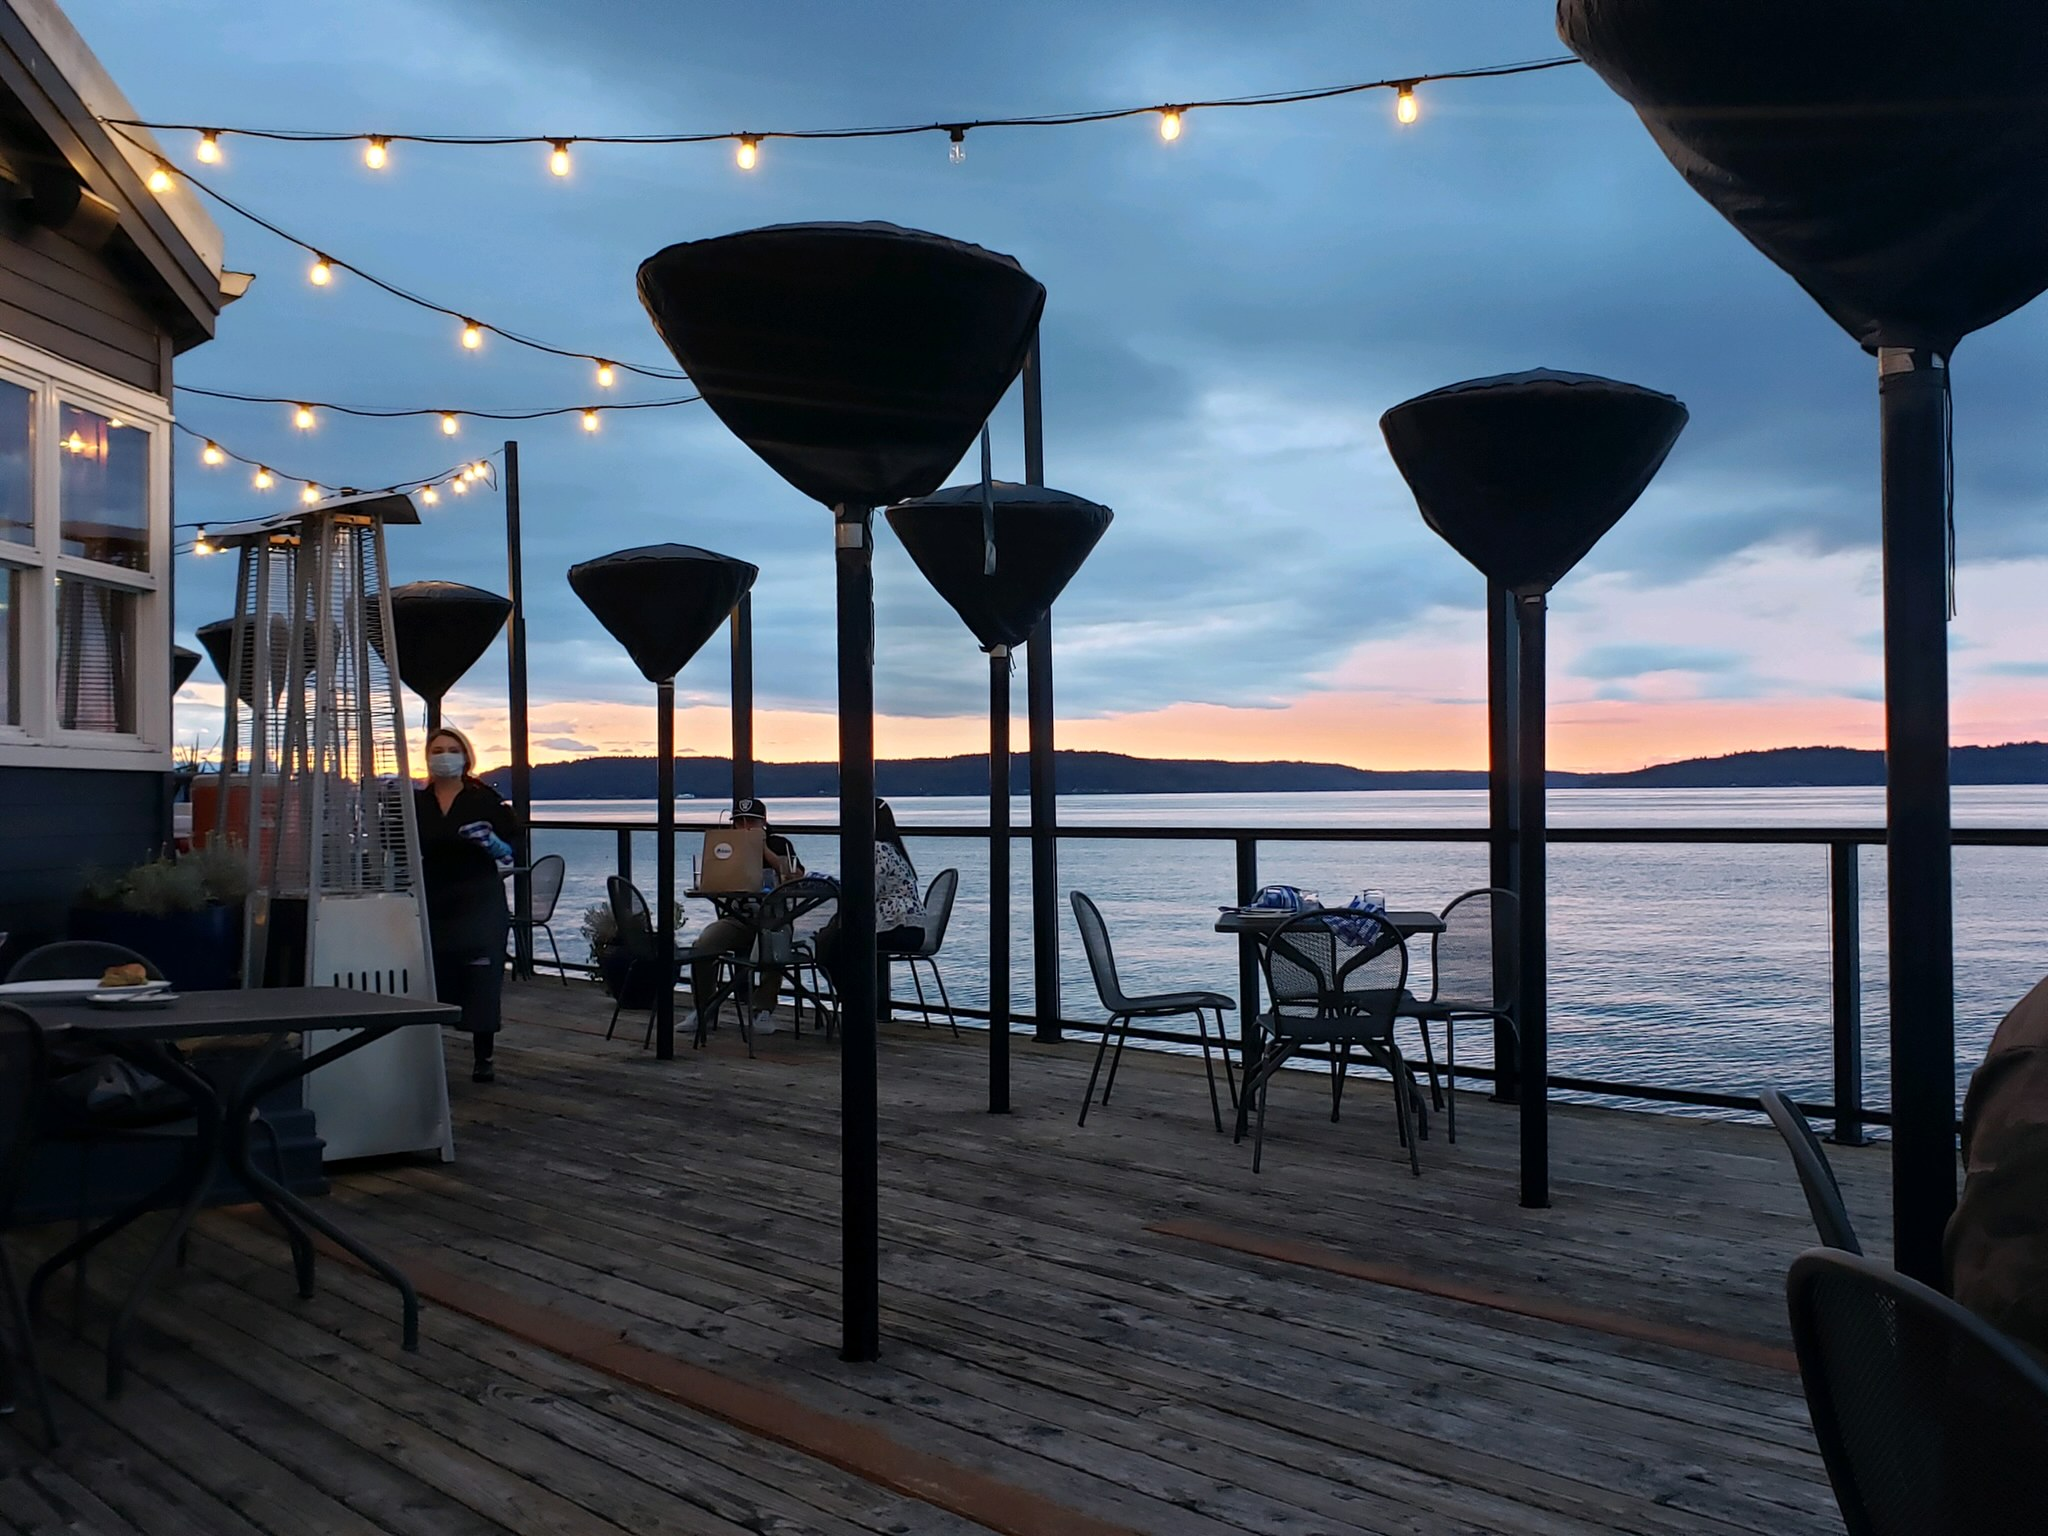 A view of the sound from Duke's Chowder House in West Seattle, with a masked server and tables on the patio